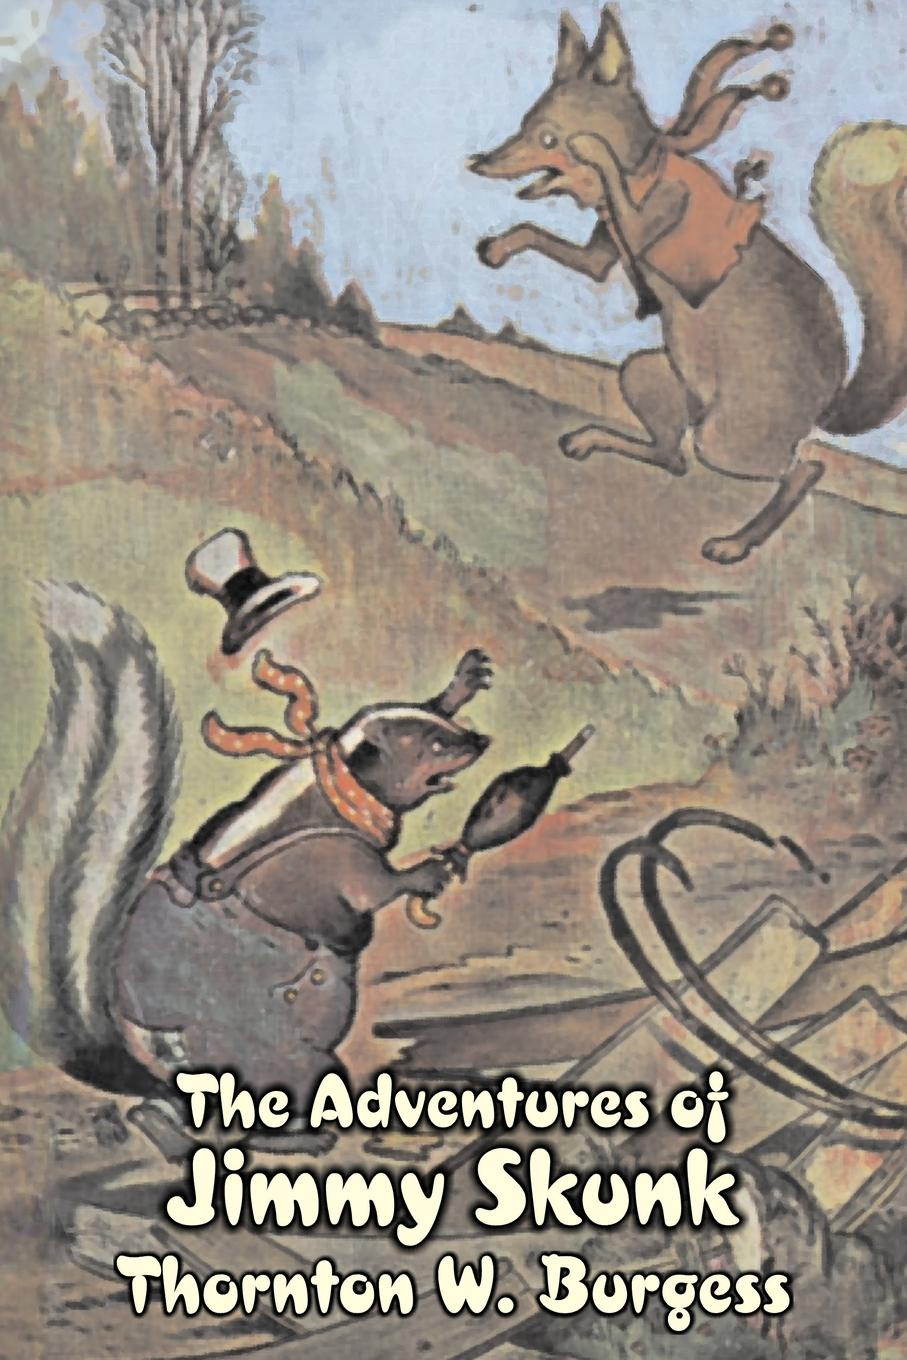 Thornton W. Burgess The Adventures of Jimmy Skunk by Thornton Burgess, Fiction, Animals, Fantasy & Magic